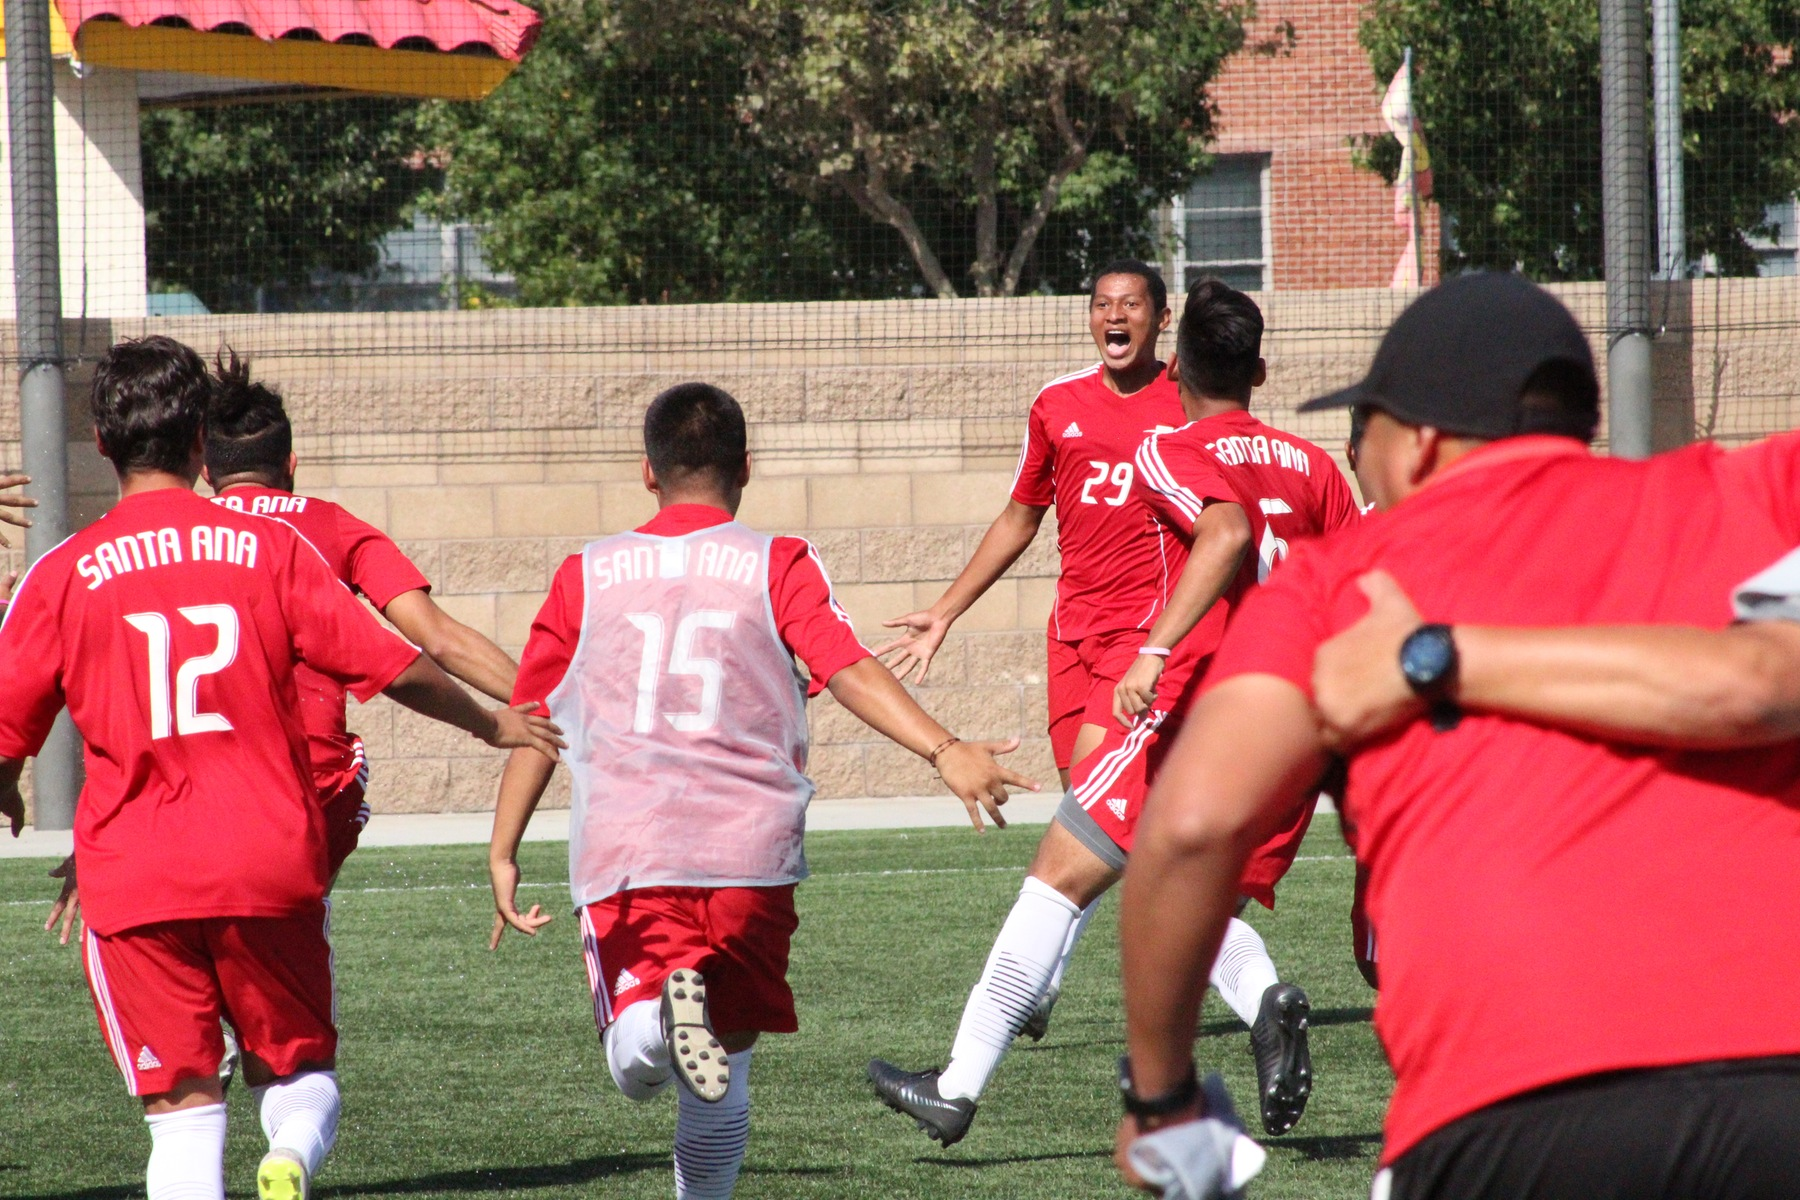 Dons Score Three Second Half Goals to Grab Non-Conference Win Against GWC